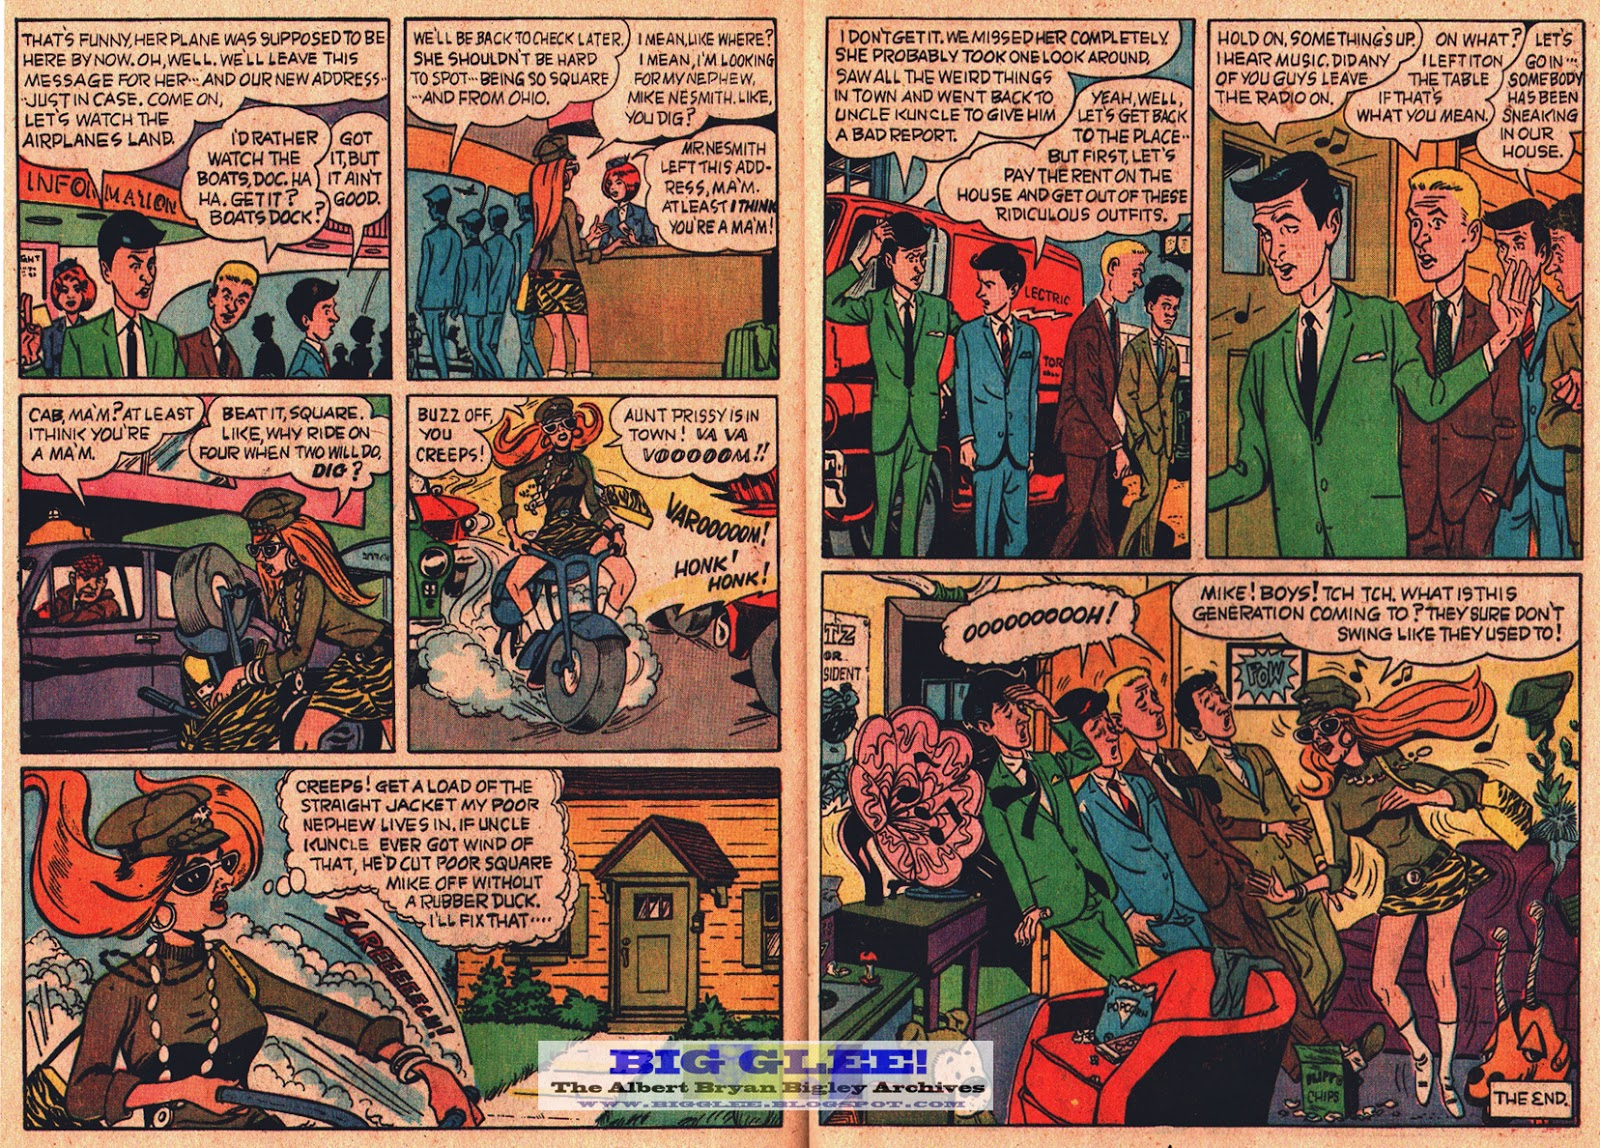 Altho early monkees issues were drawn by jose delbo